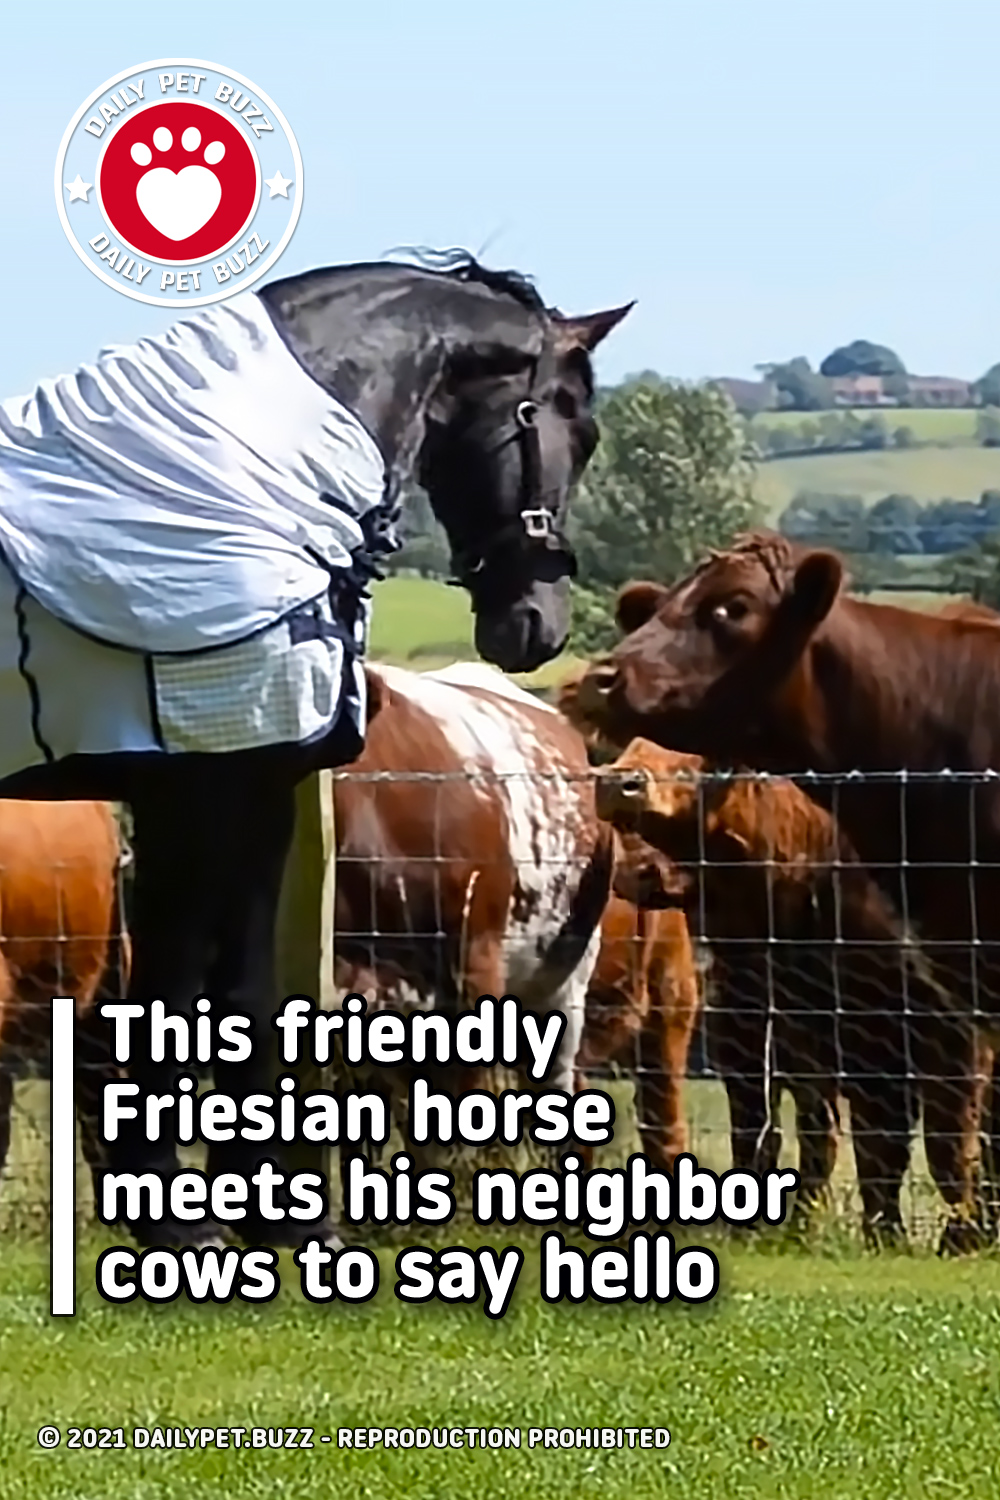 This friendly Friesian horse meets his neighbor cows to say hello